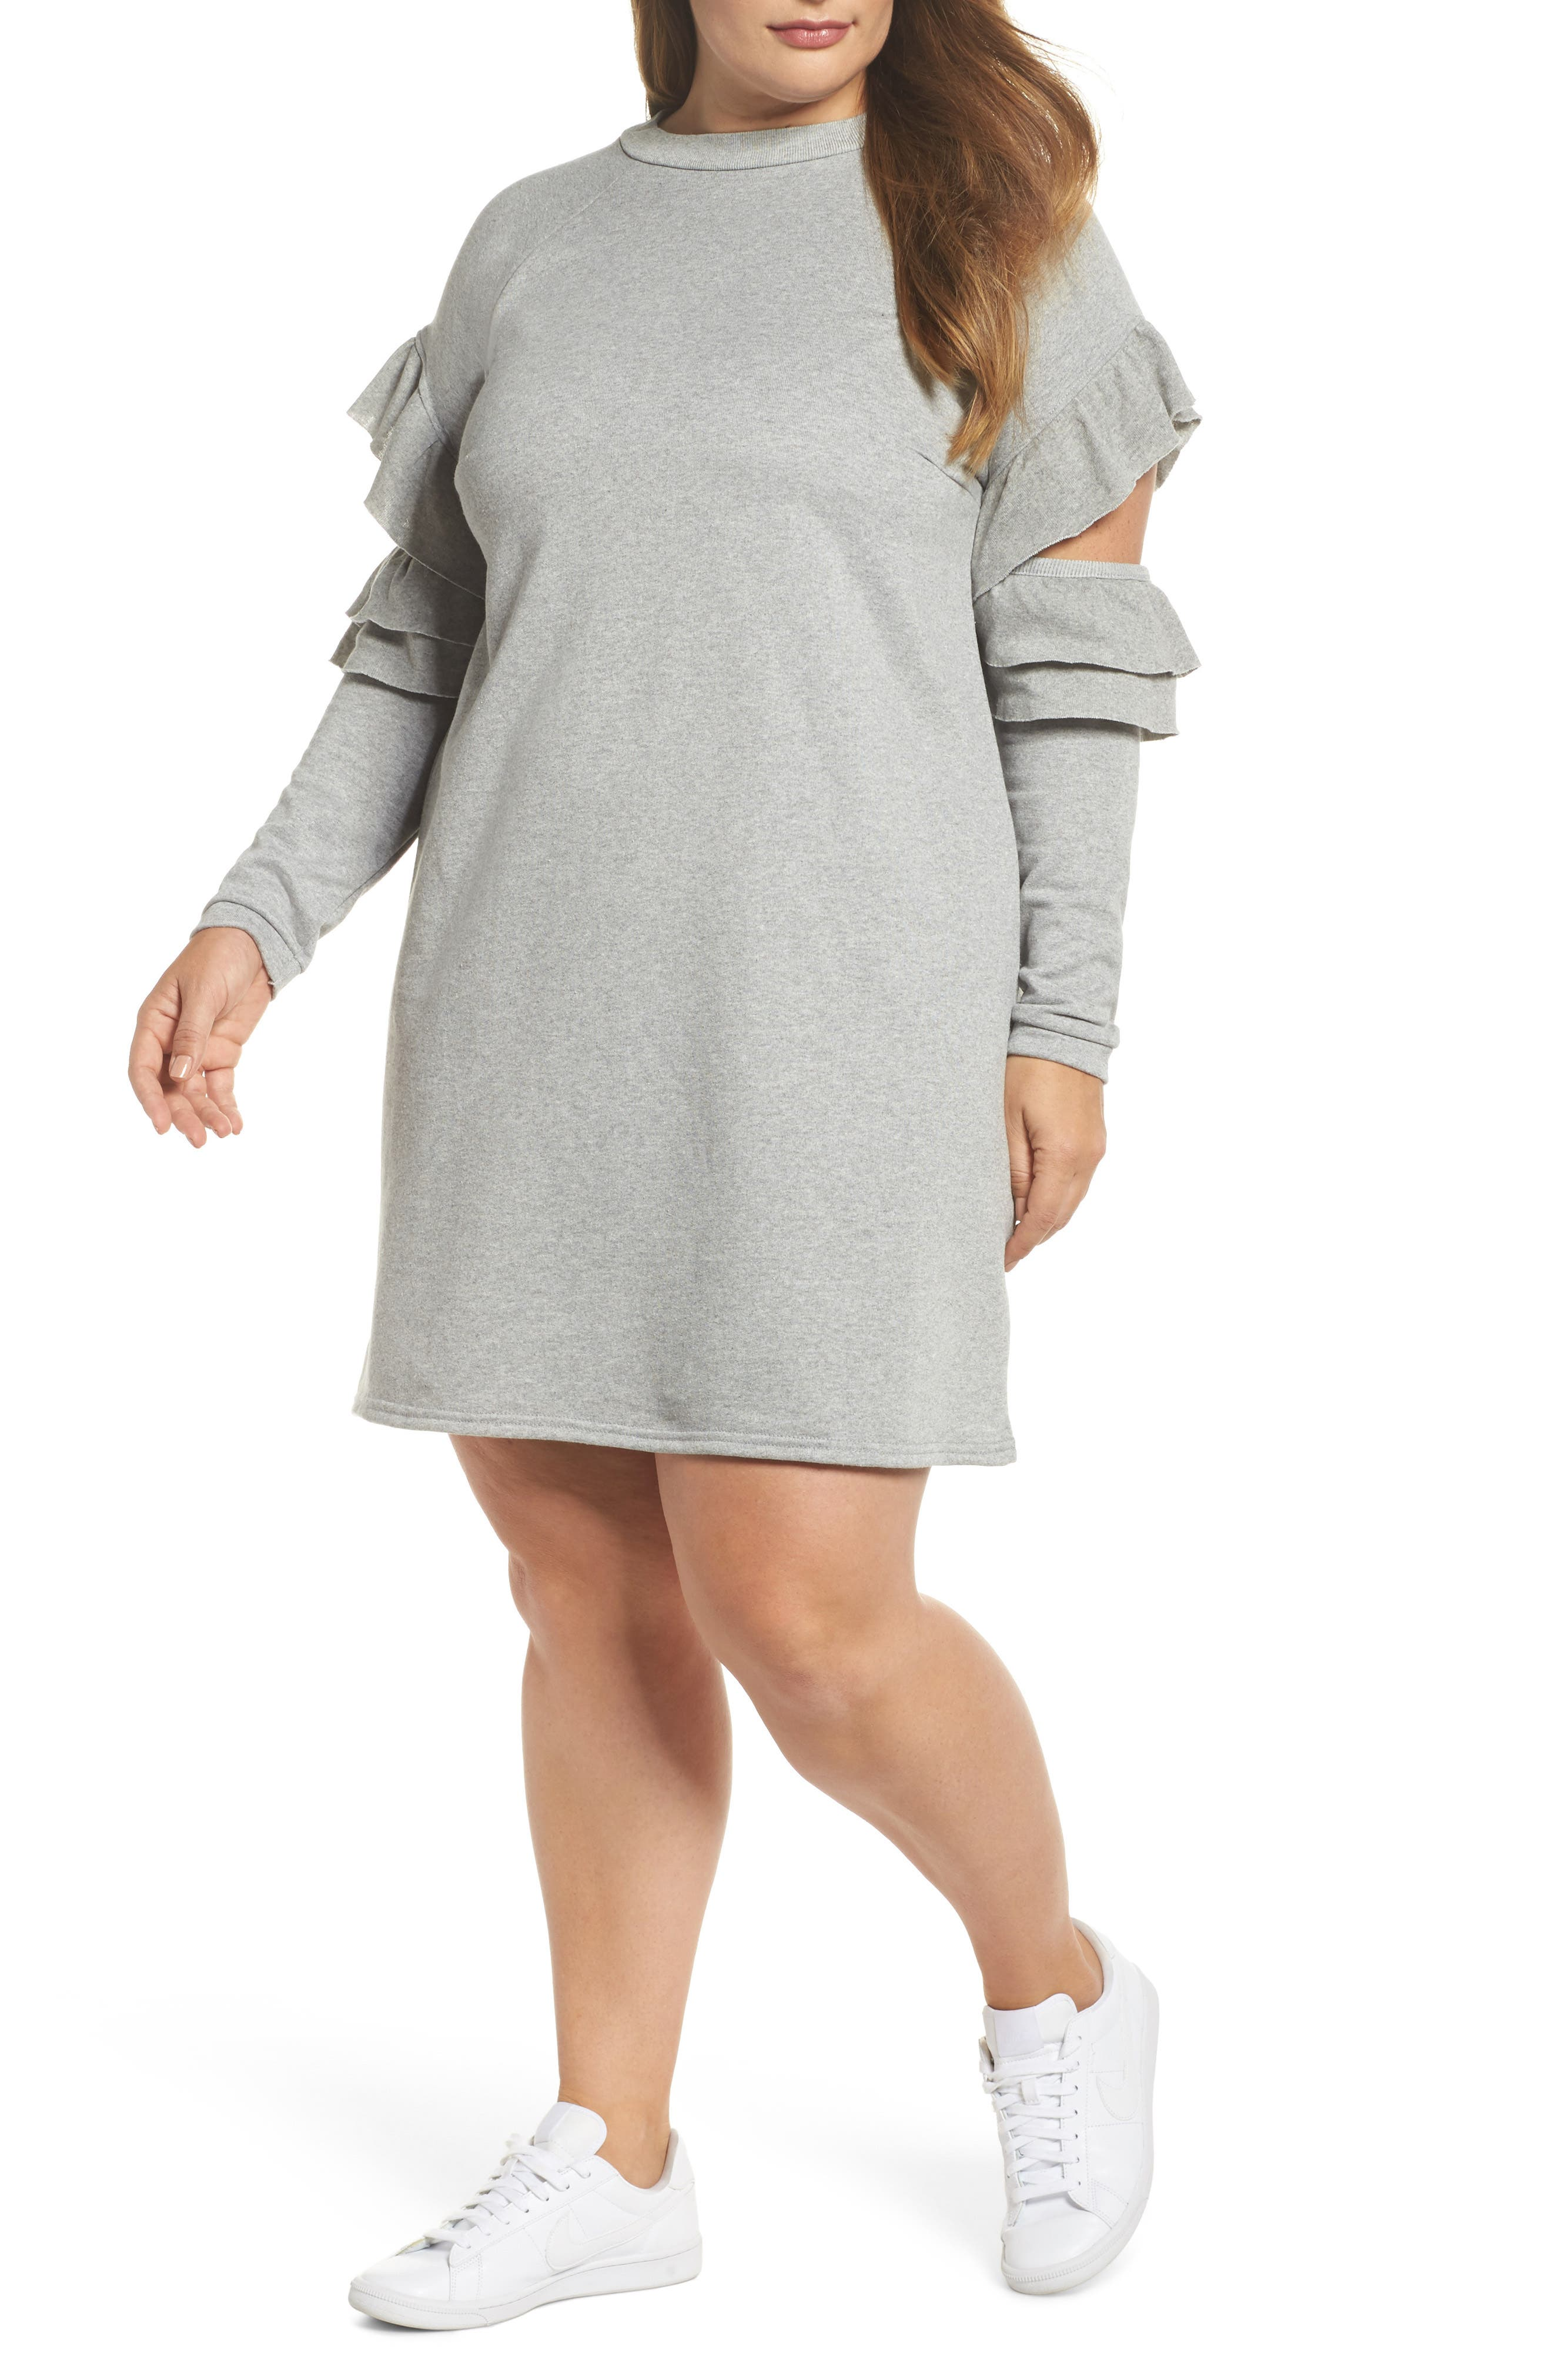 Ruffle Sleeve French Terry Dress,                             Main thumbnail 1, color,                             050